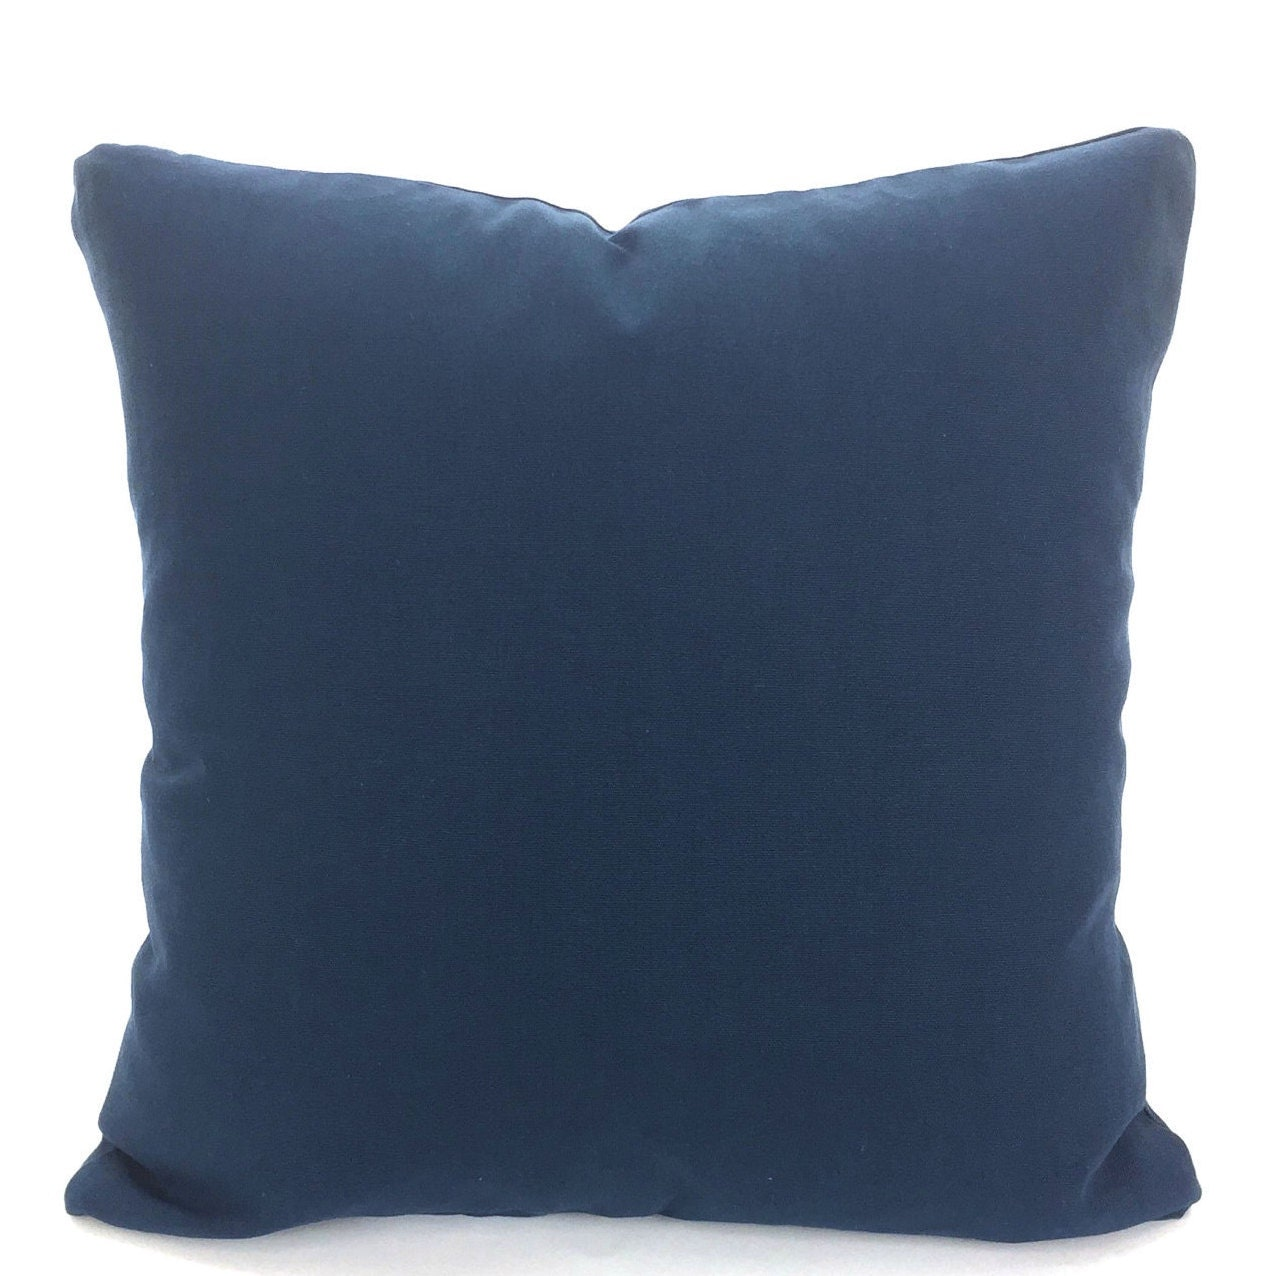 Decorative Pillow Wraps : Solid Navy Blue Pillow Covers Decorative Throw Pillows